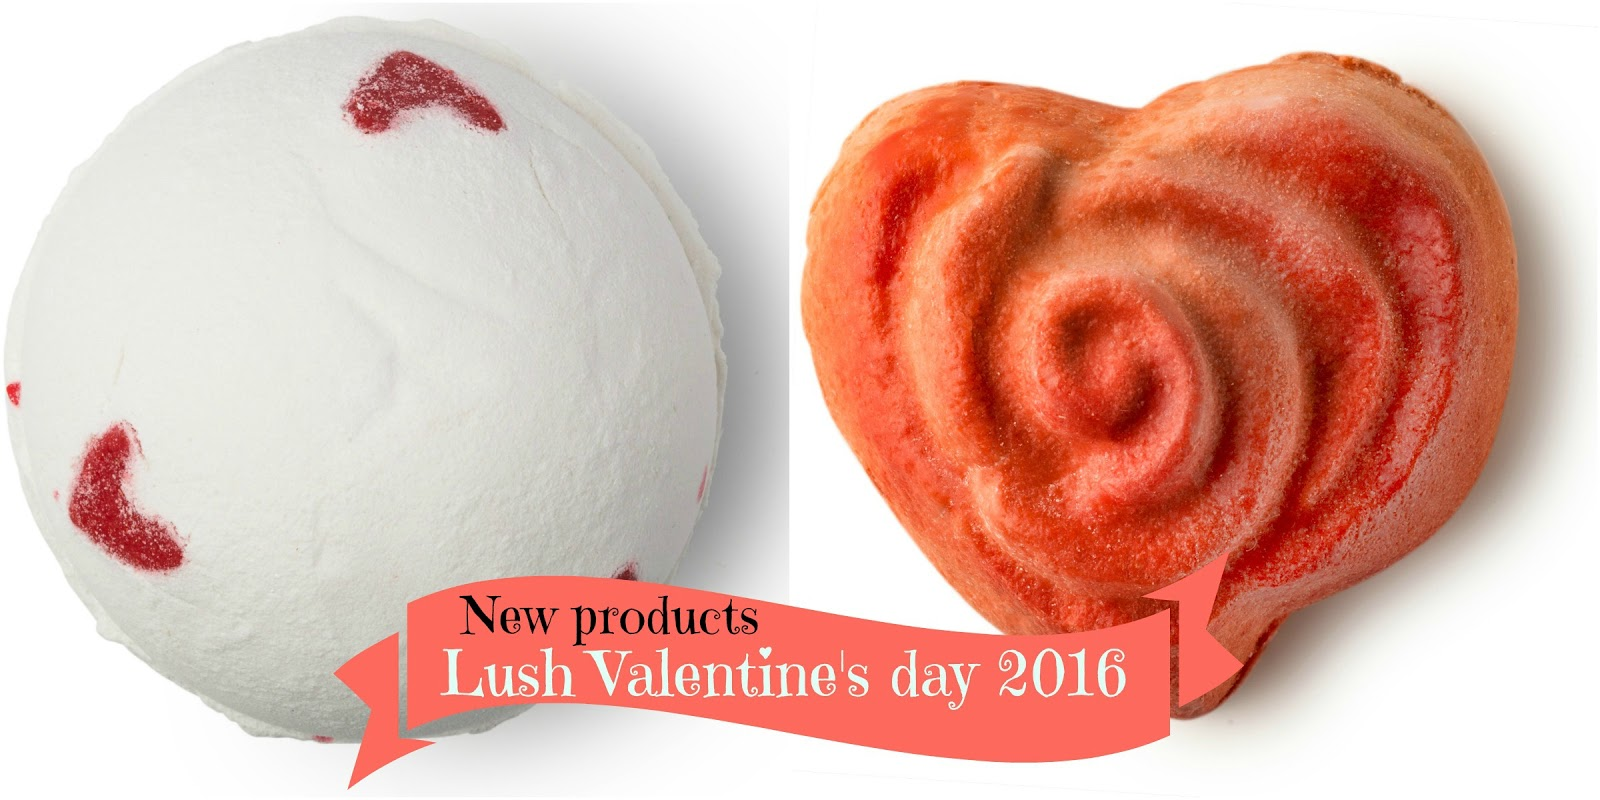 Lush-new-products-valentinesday-2016